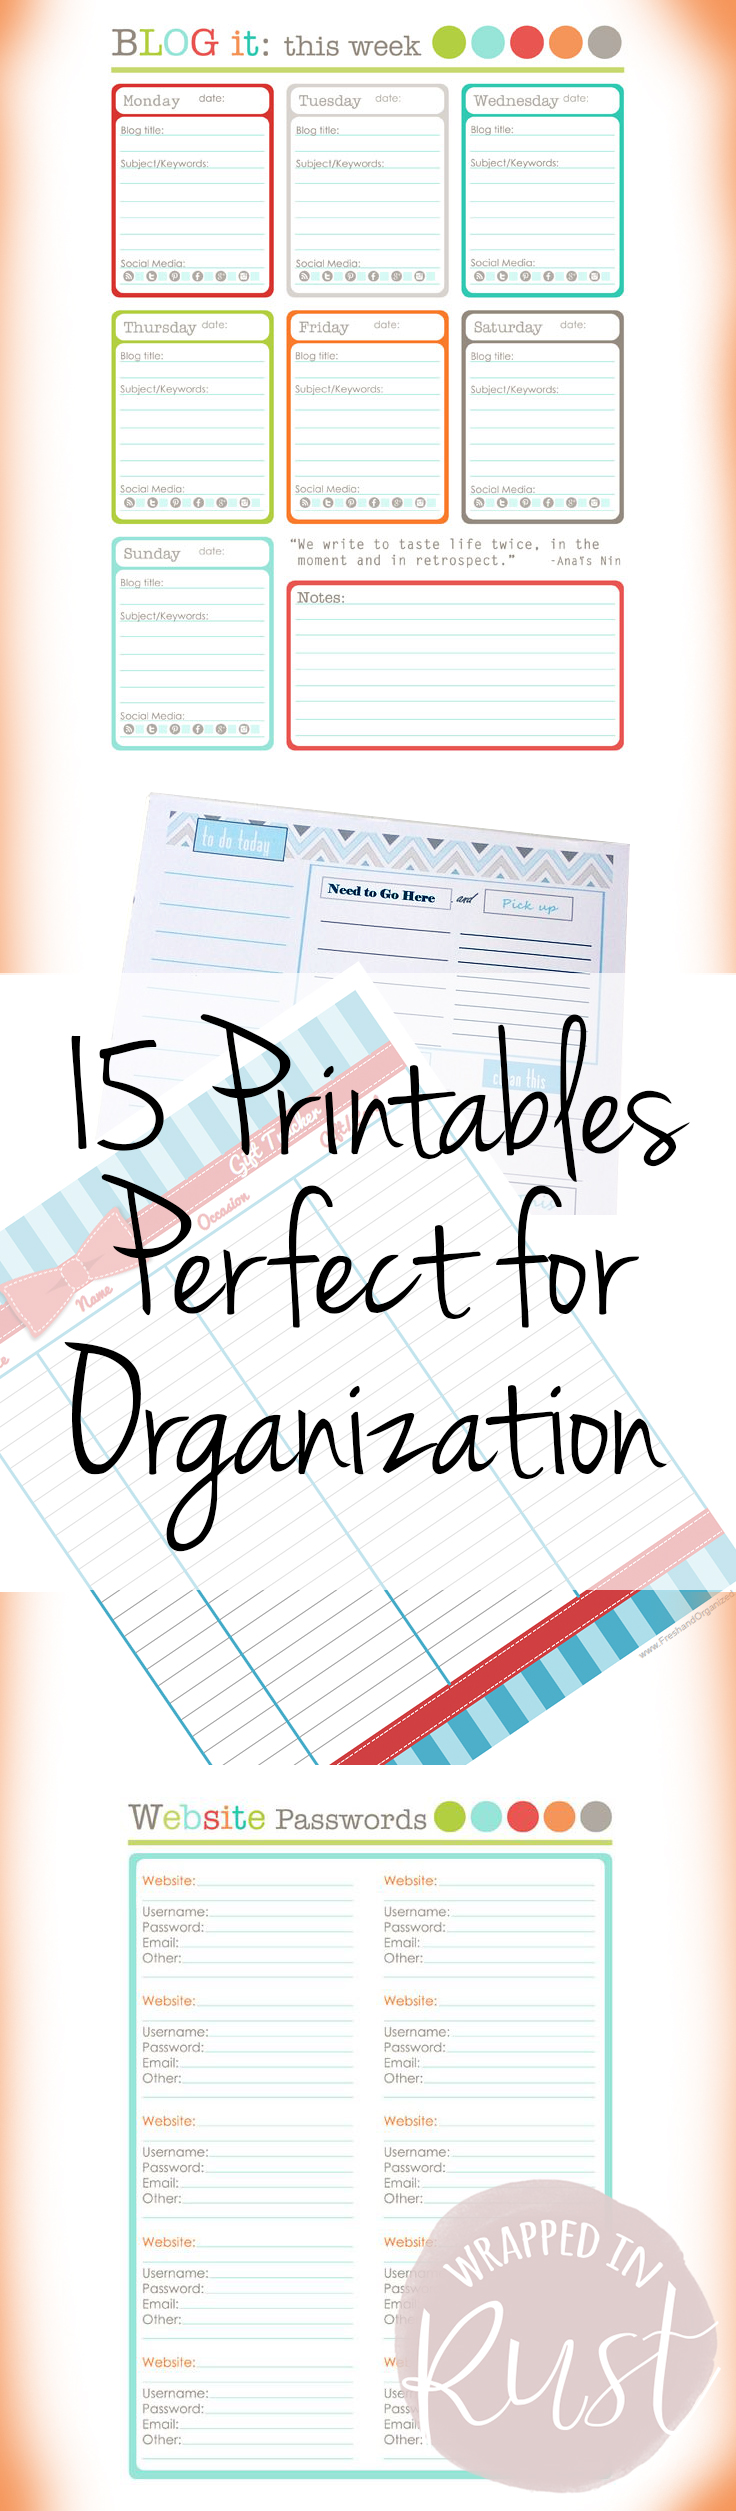 photograph relating to Home Organization Printables named 15 Printables Suitable for Enterprise - Wrapped inside of Rust